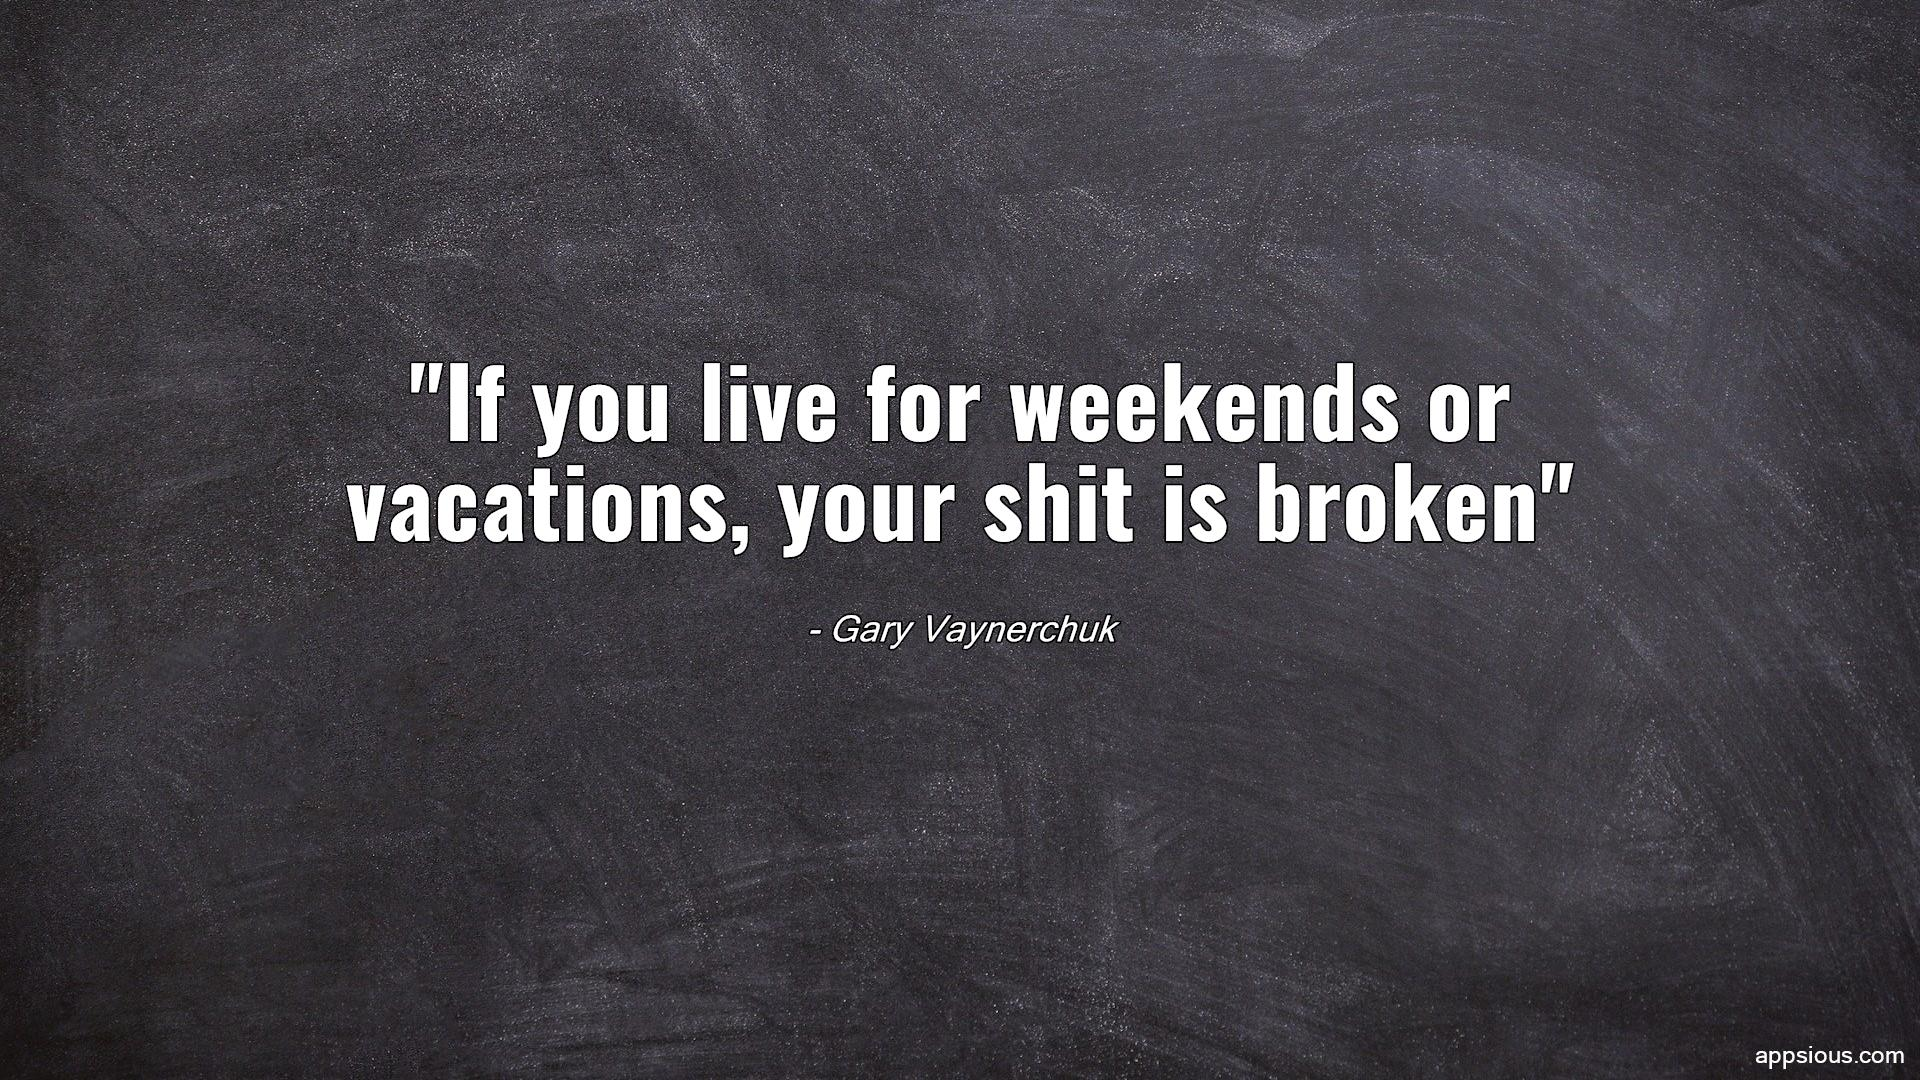 If you live for weekends or vacations, your shit is broken